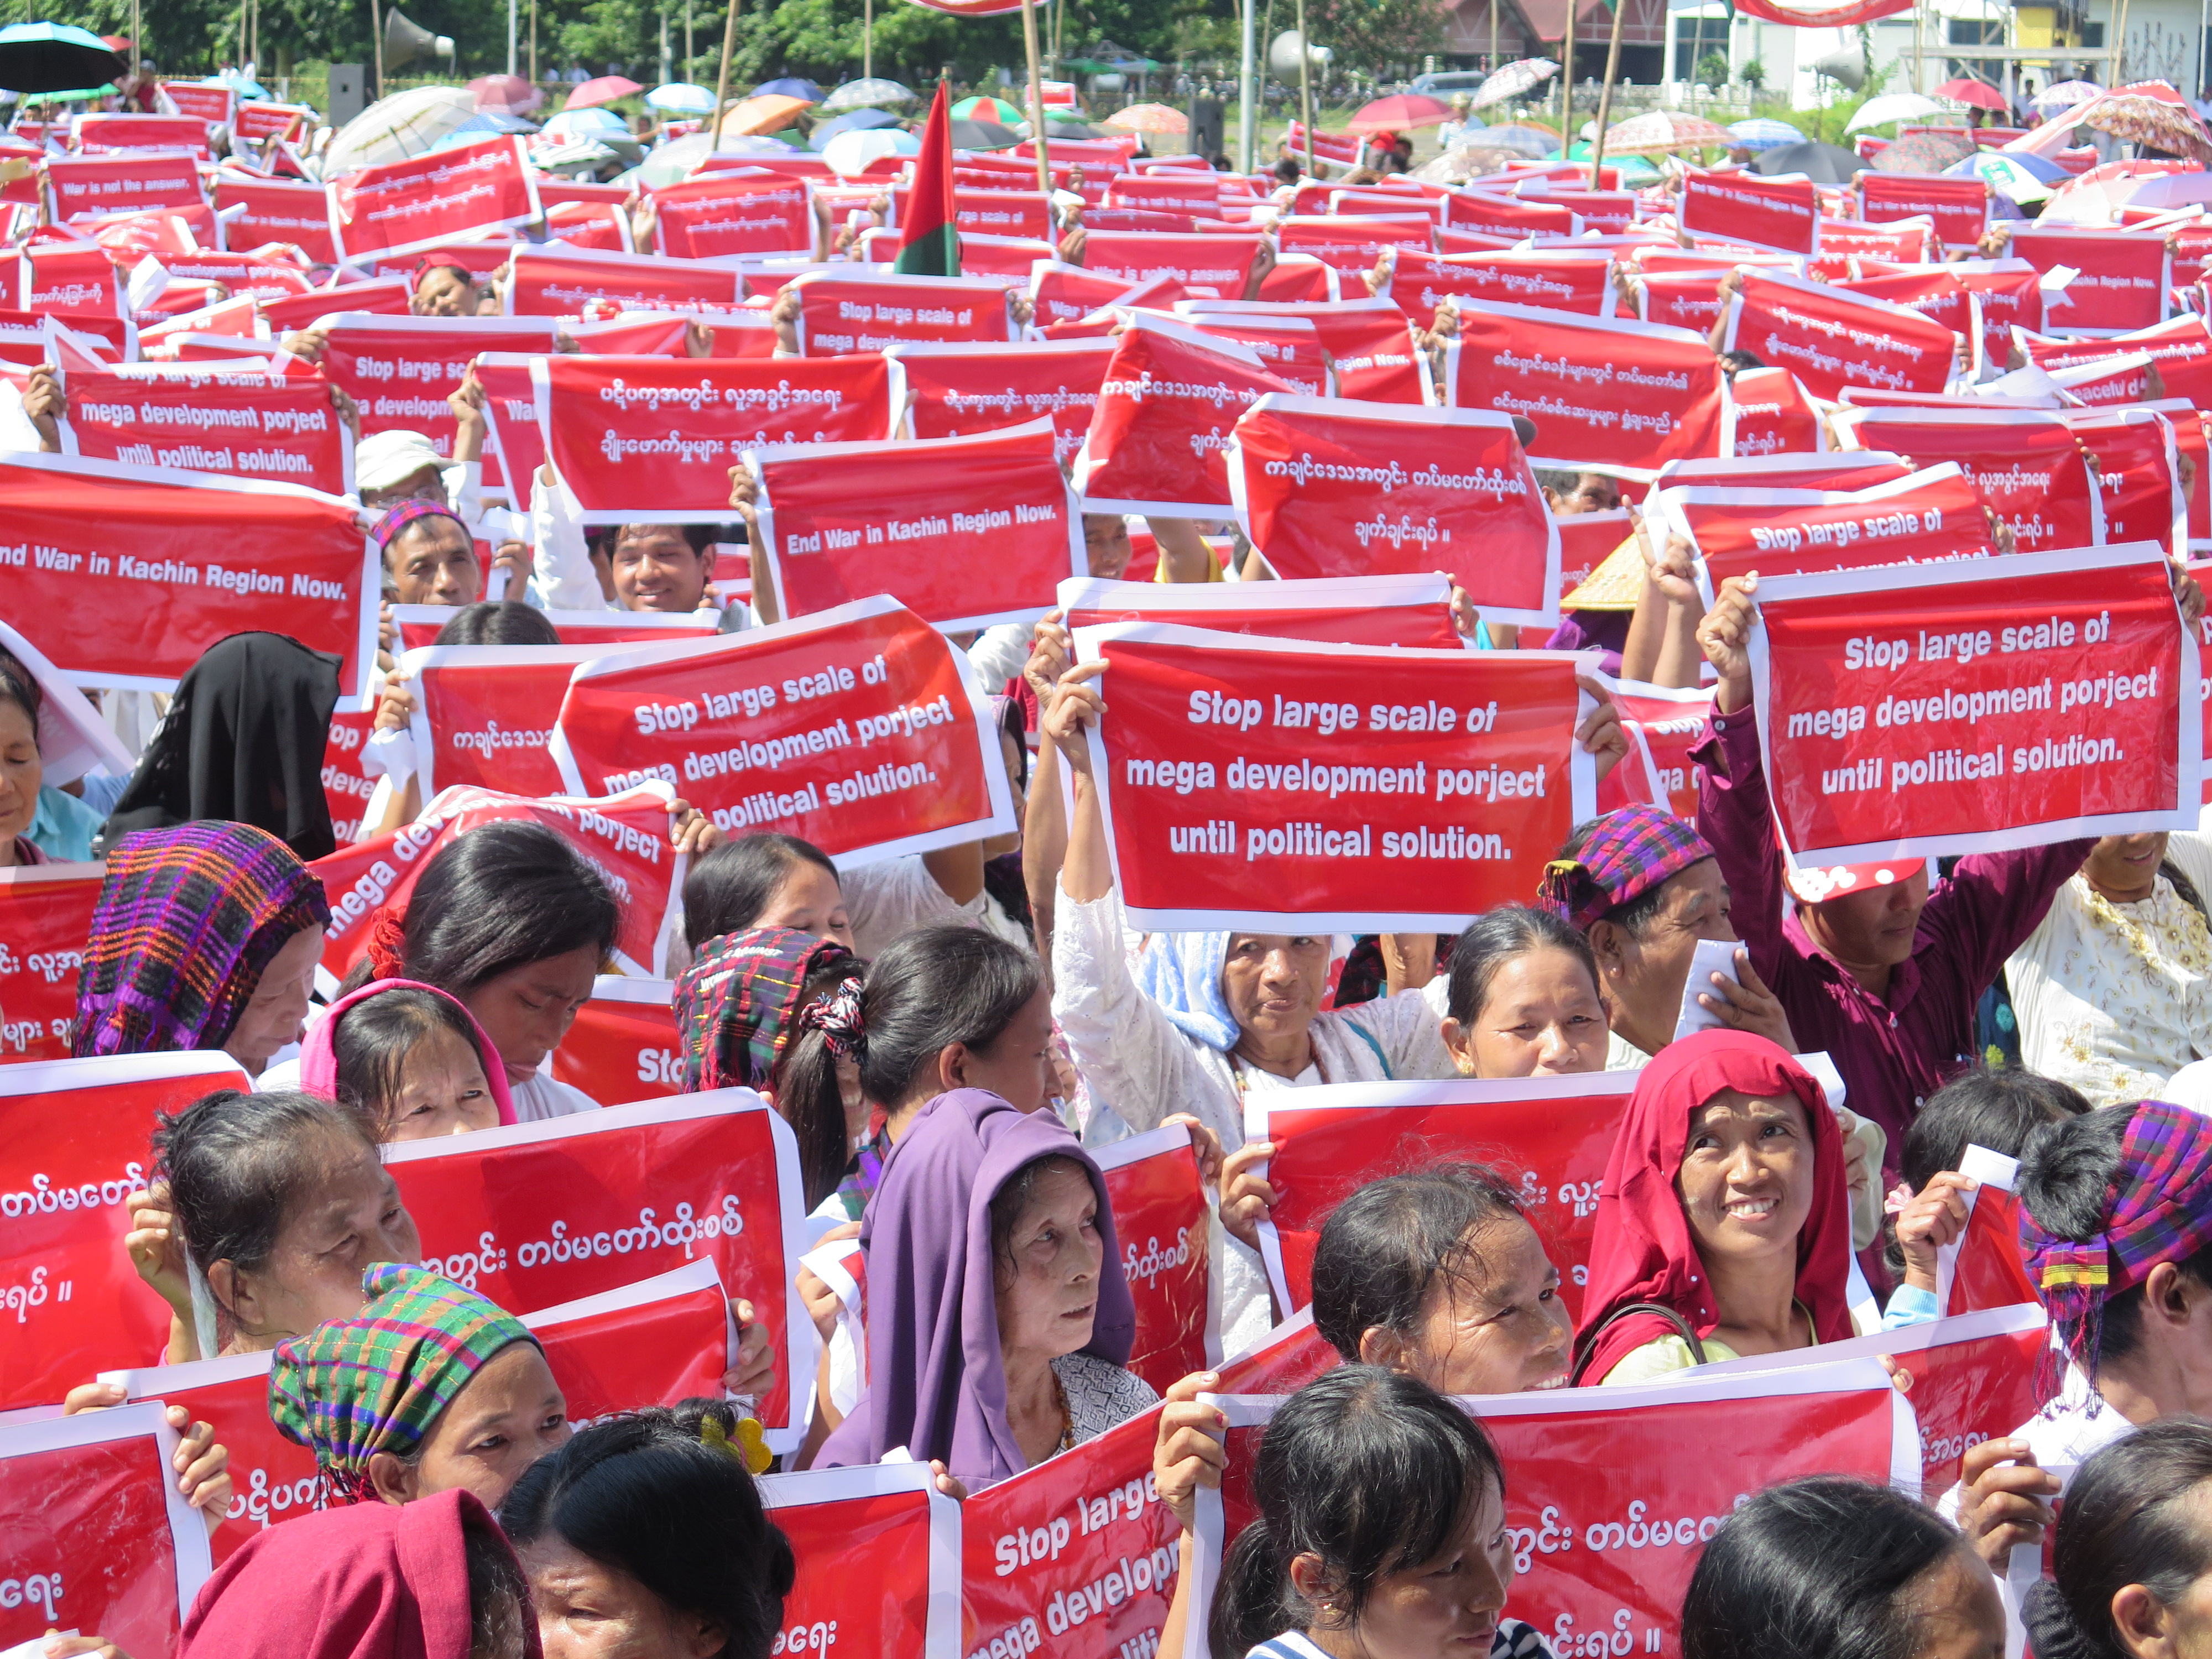 Demonstrators gathered in the Kachin State capital Myitkyina last week to demand an end to conflict in the state. (Photo: Nang Lwin Hnin Pwint / The Irrawaddy)